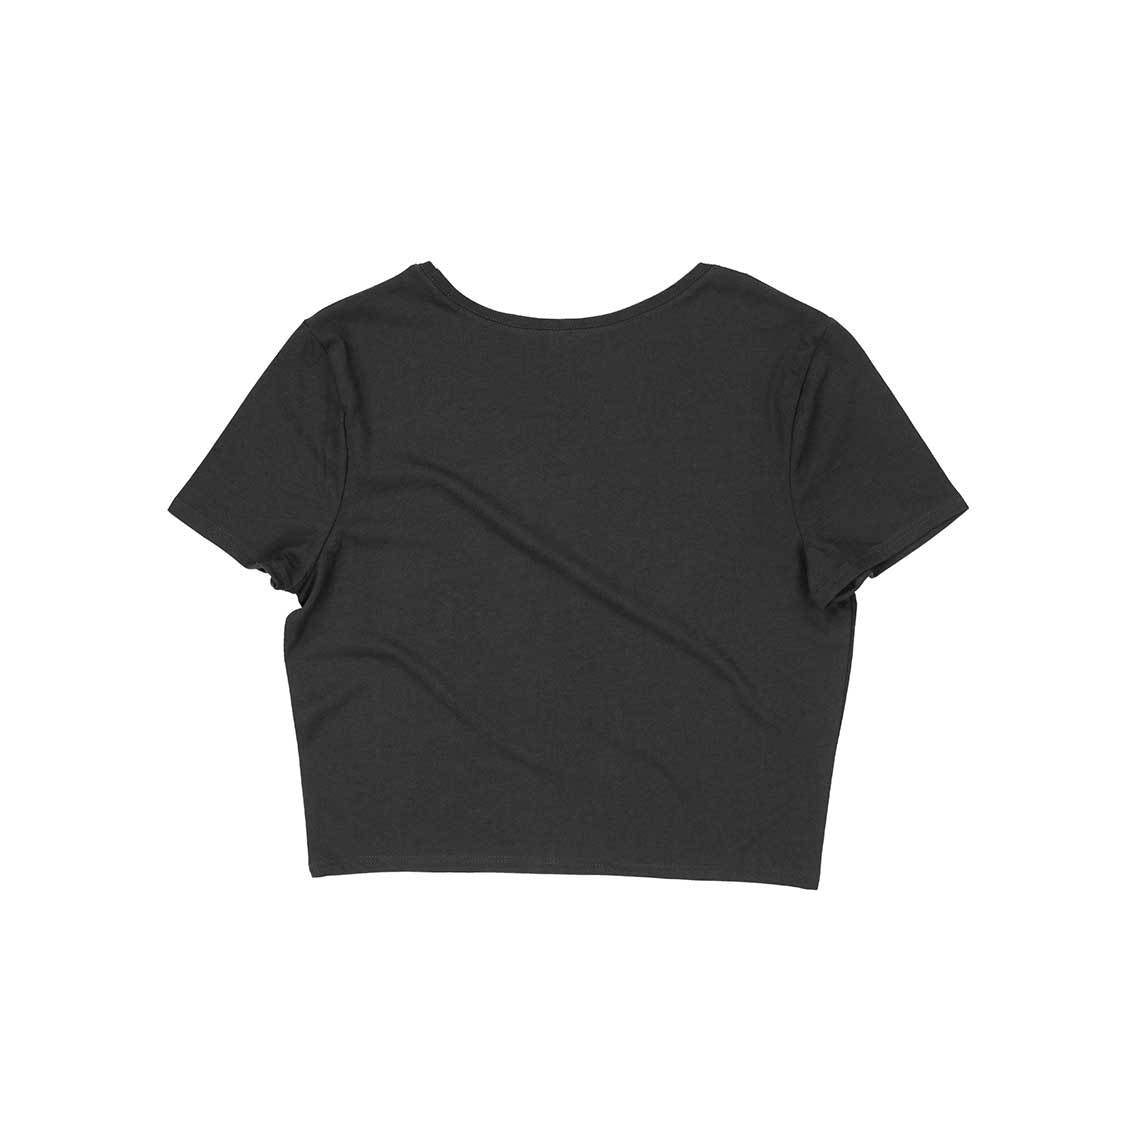 SuprCrowd Dark Camo Women Crop Top - SuprCrowd